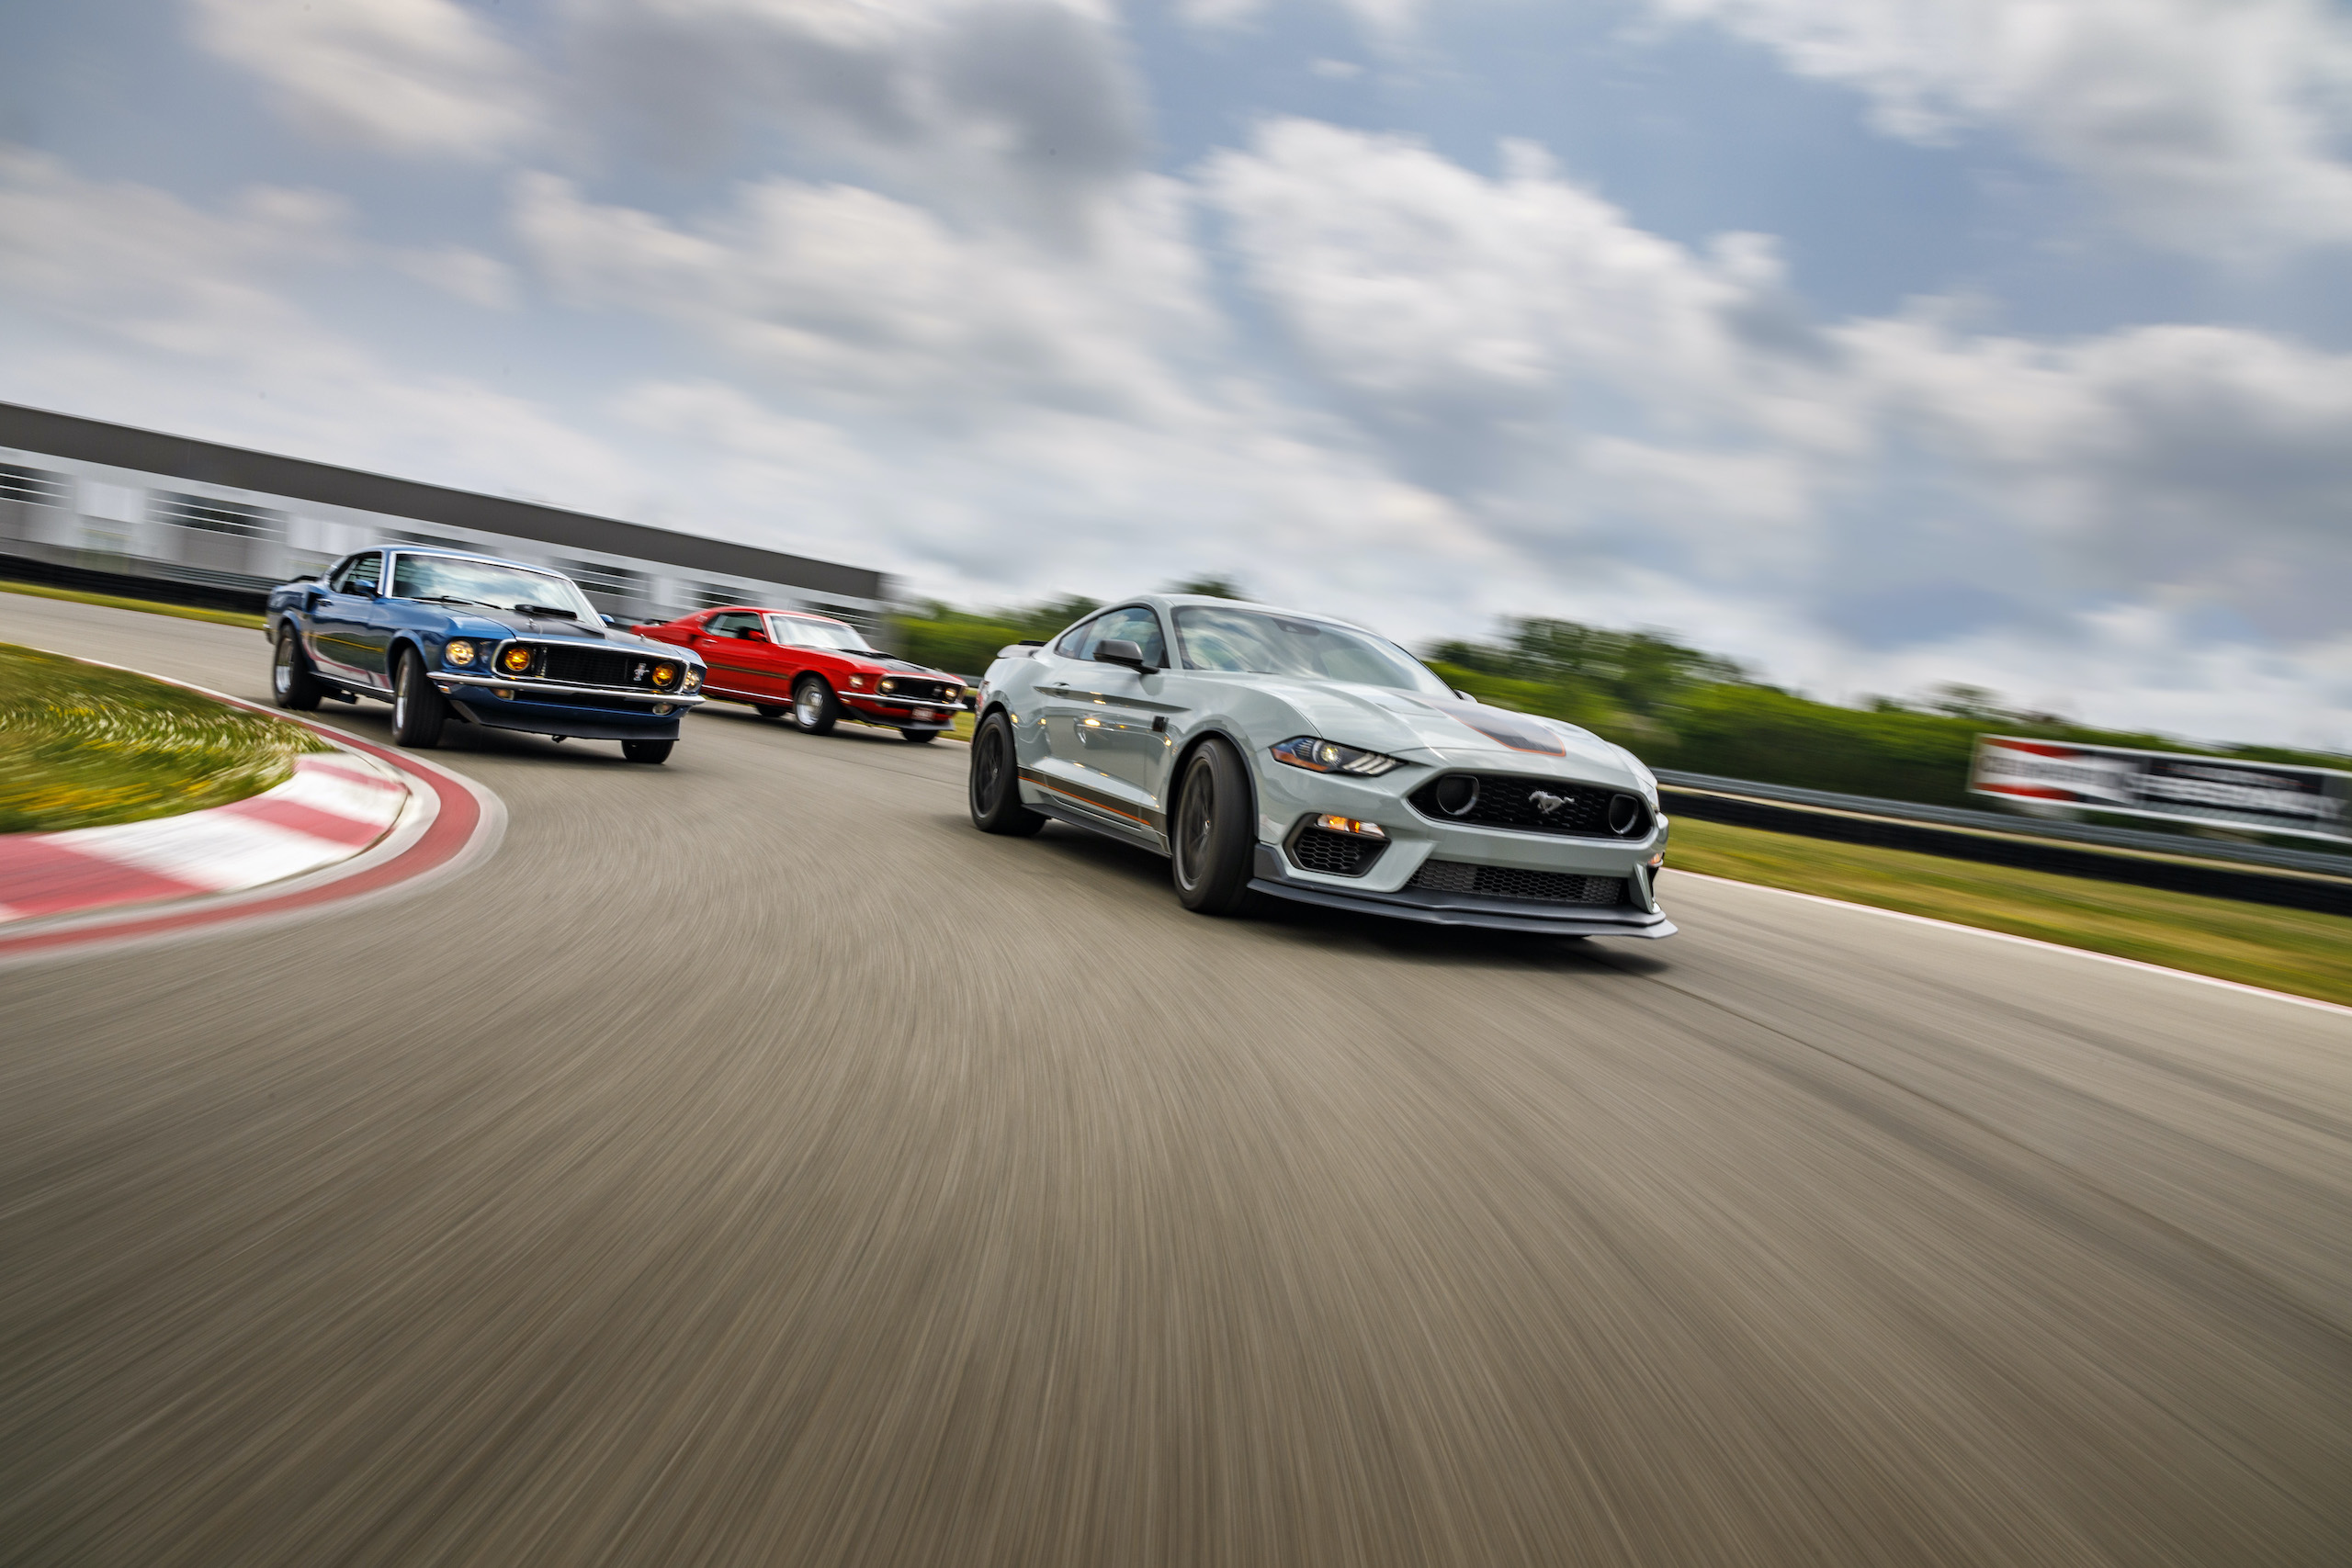 2021 Mustang Mach 1 white with classics on track cornering action